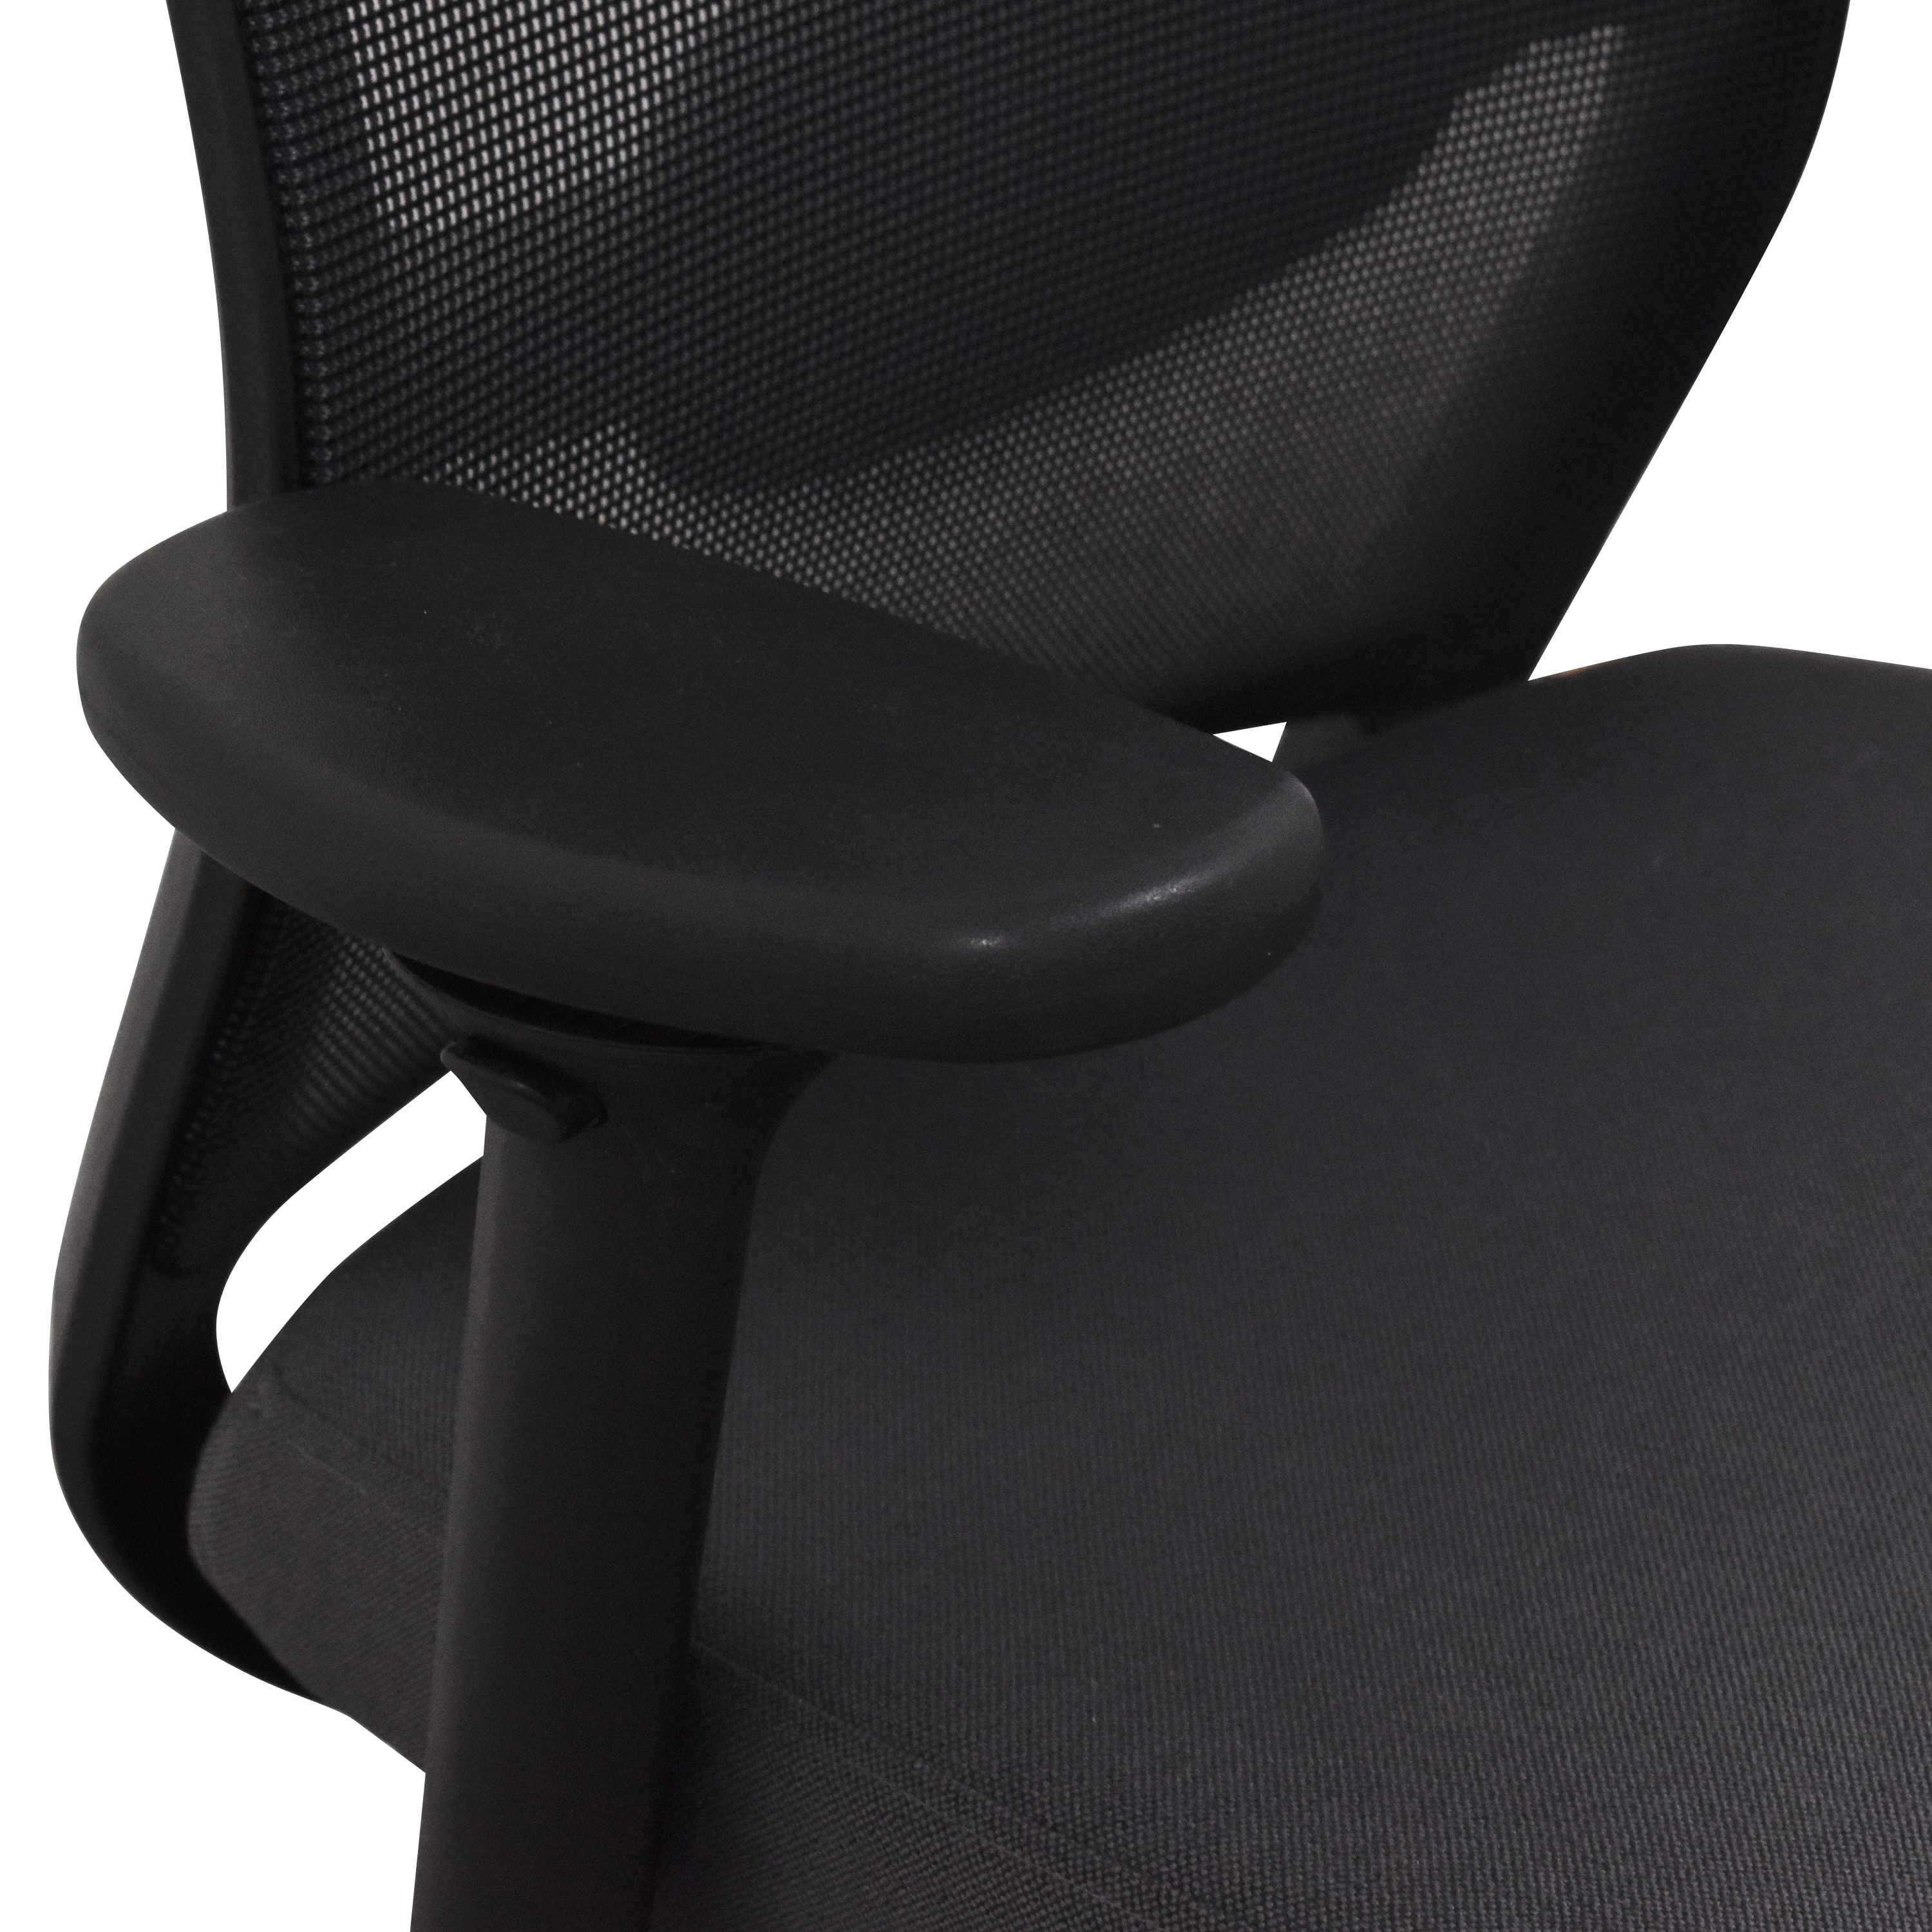 West Elm West Elm Task Chair Home Office Chairs